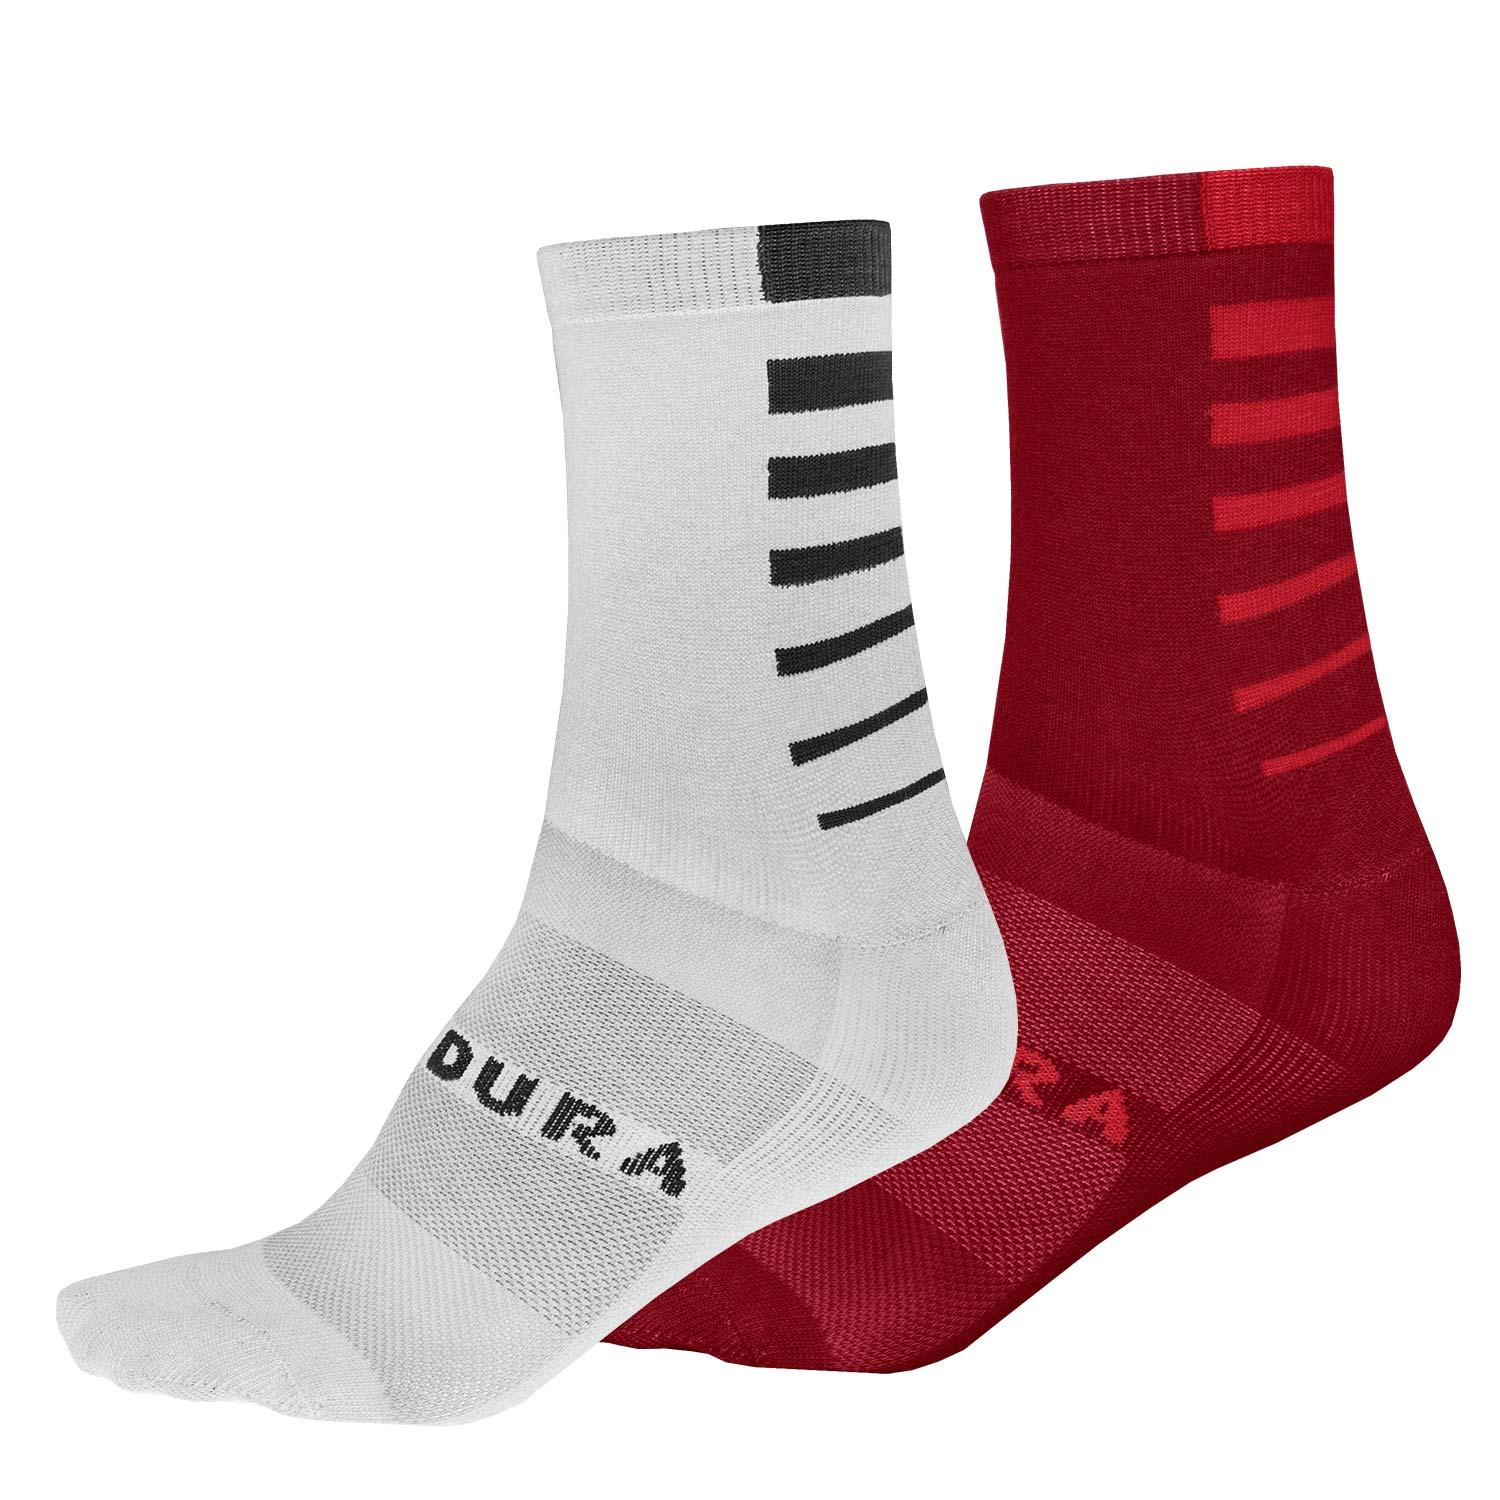 Endura Fietssokken zomer 2-pack Heren Rood en Wit/Zwart - Coolmax Stripe Socks (Twin-Pack) Rust Red en White Black